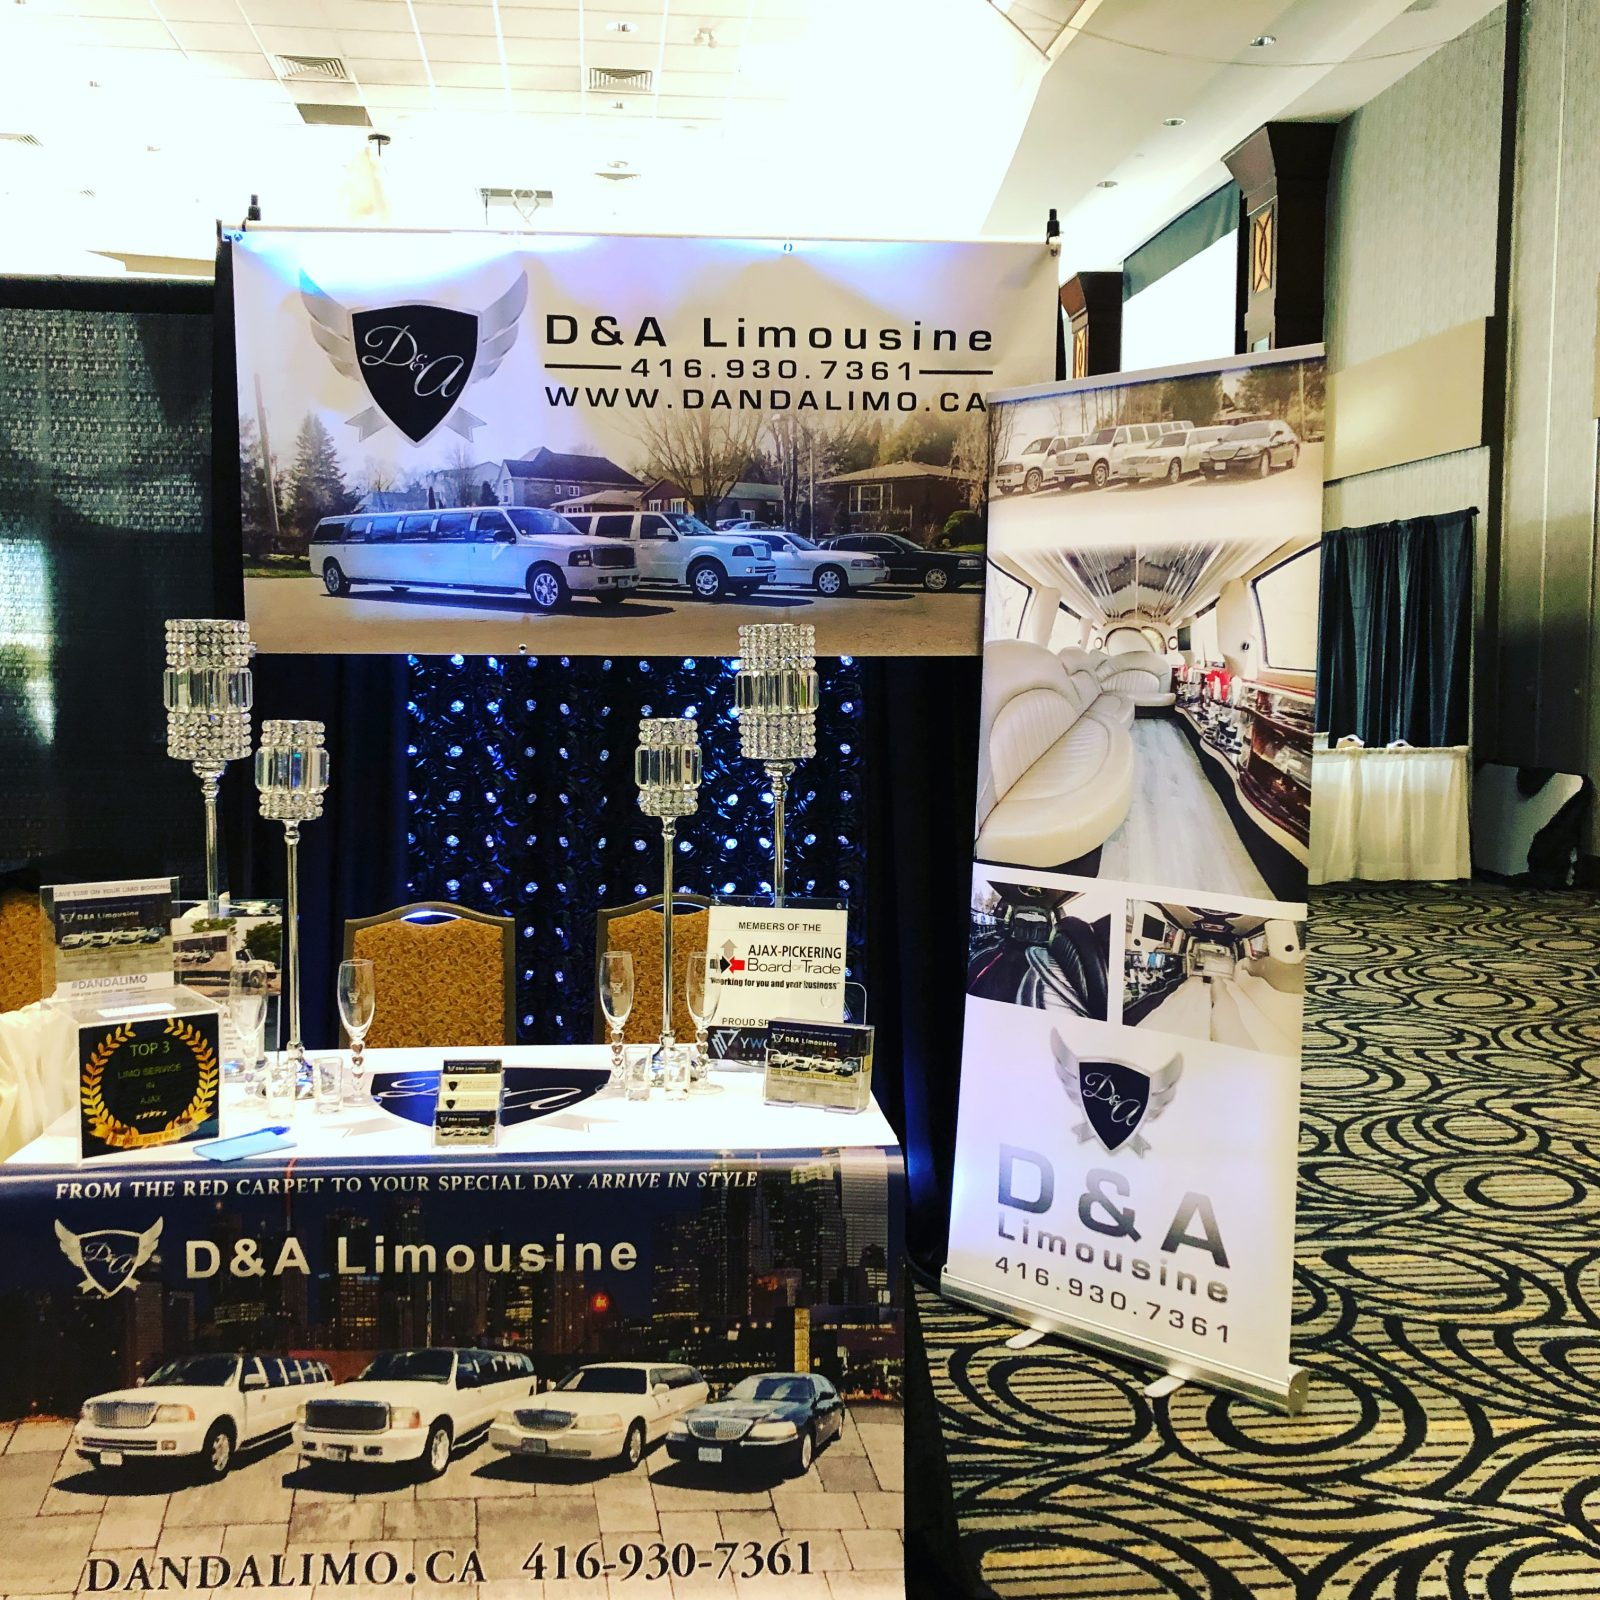 An image showing the D & A Limo booth at the Ajax-Picking Business Expo 2018